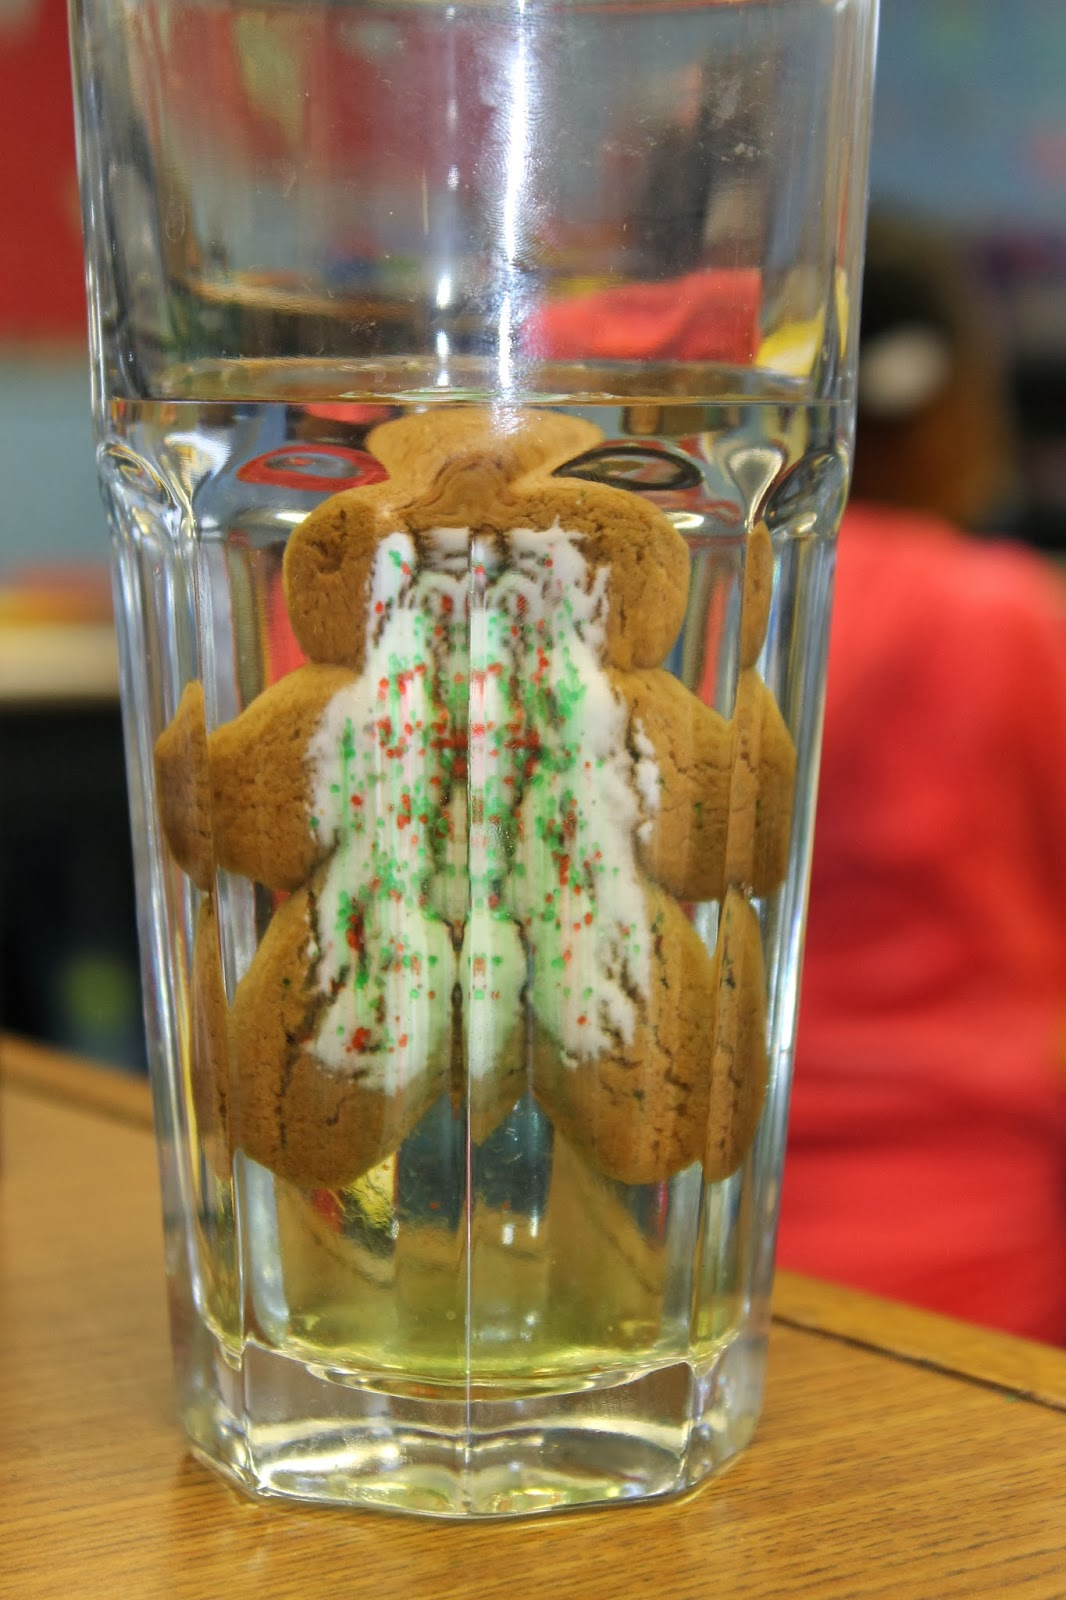 Serendipitous Discovery Gingerbread Man Science Project